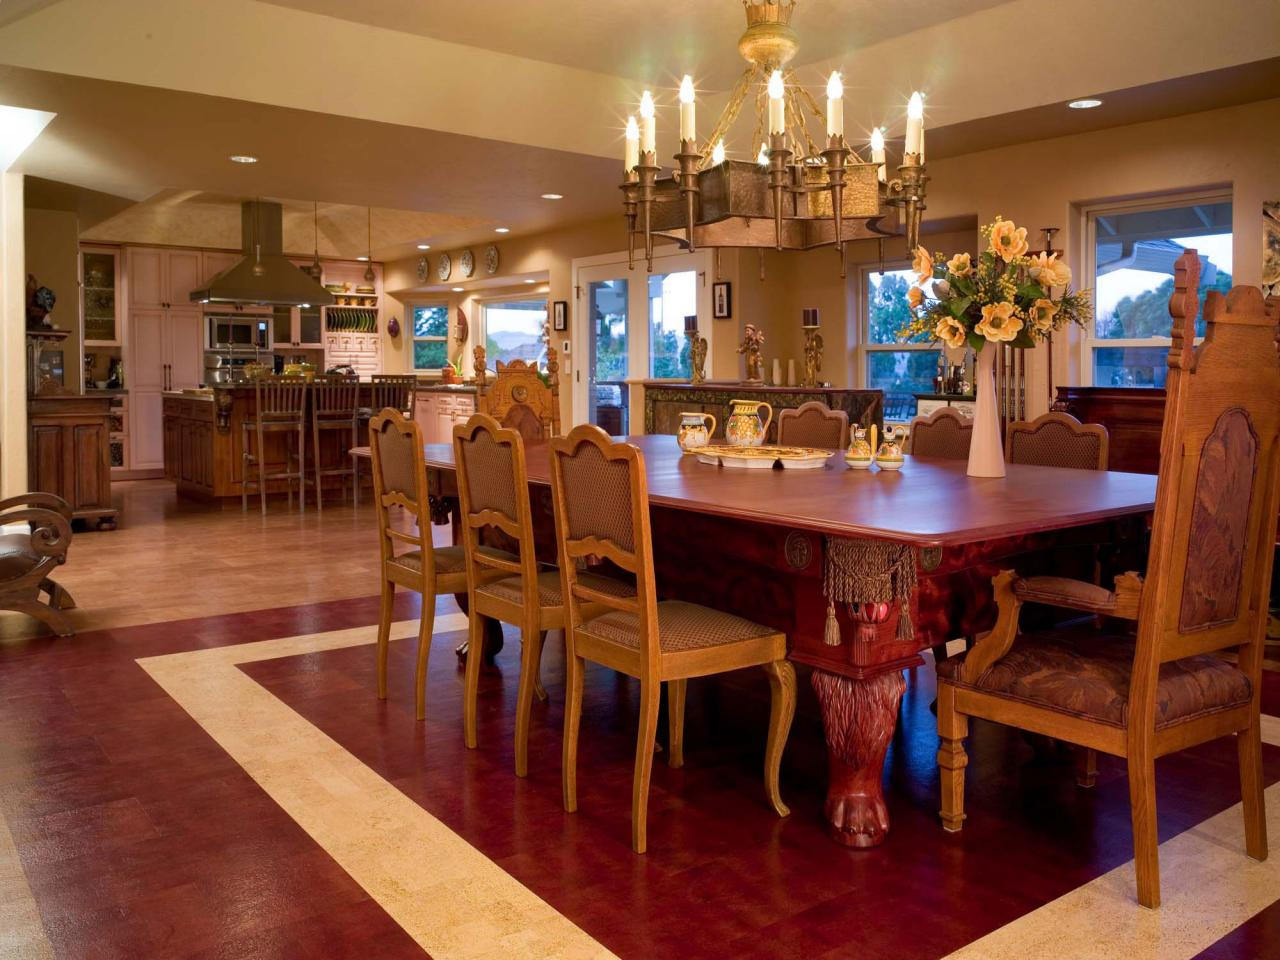 Cork flooring for your kitchen hgtv for Flooring ideas for kitchen and dining room